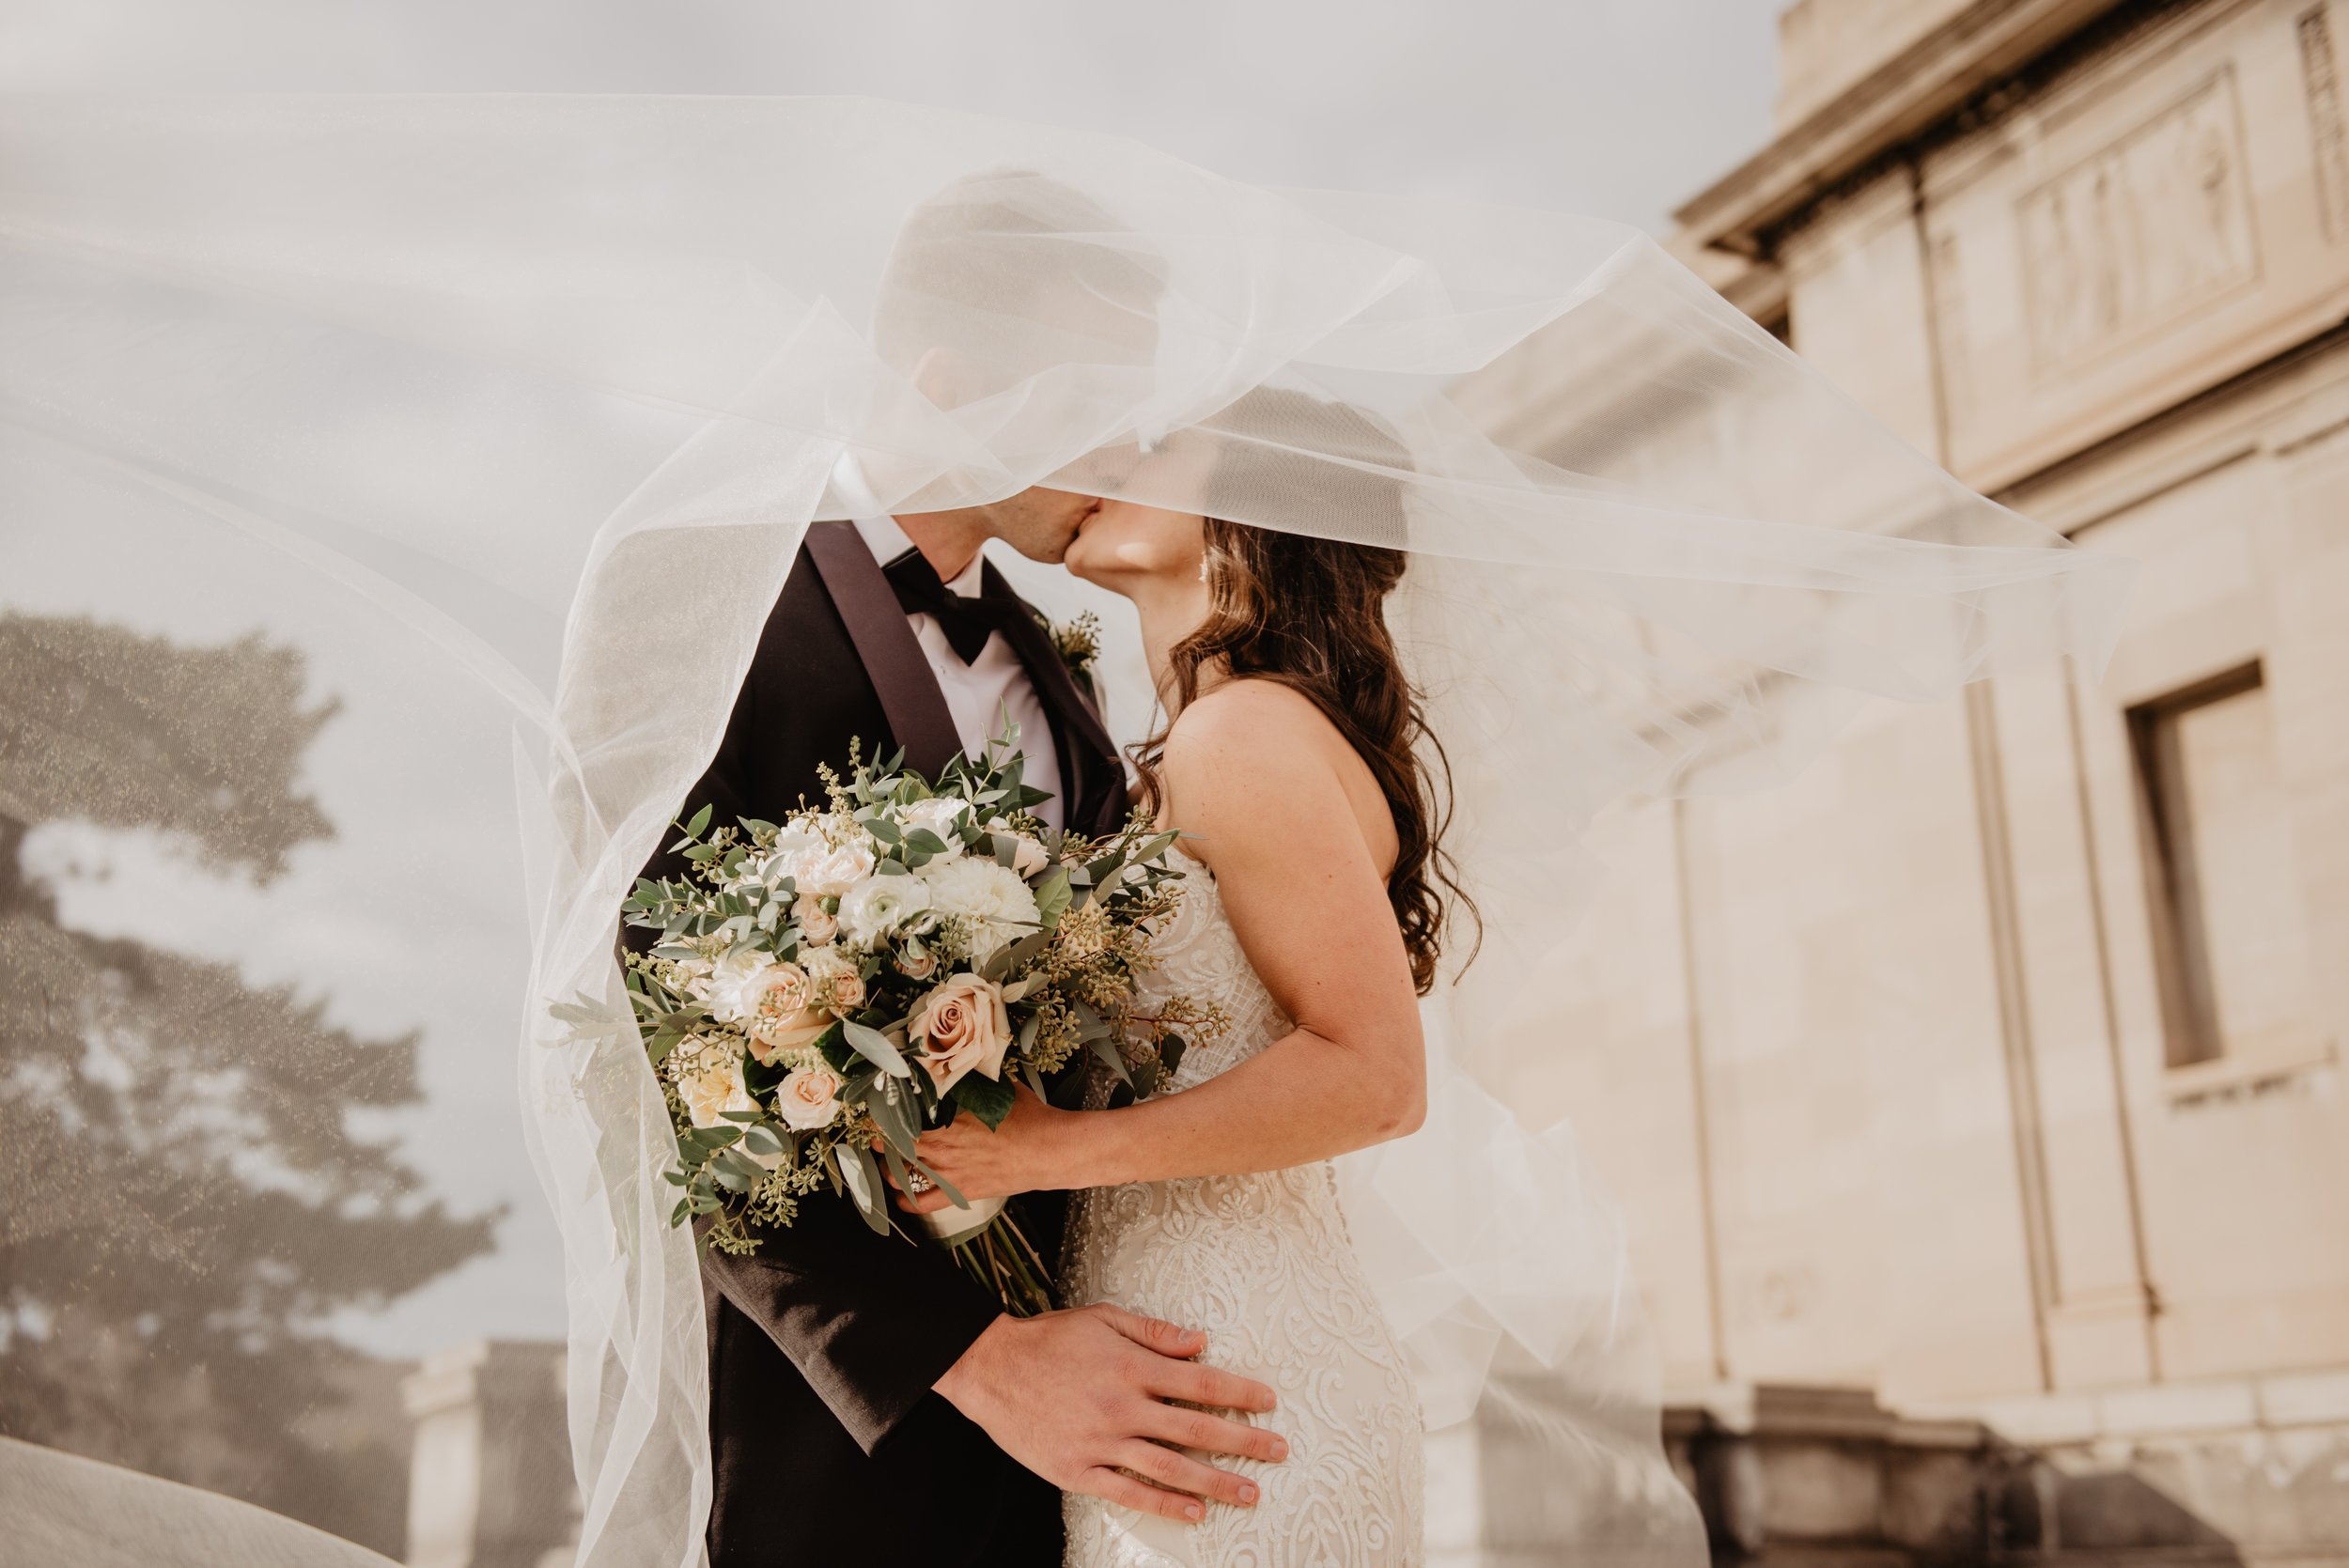 Planning a wedding? - Keep it affordable with these 7 simple tips!